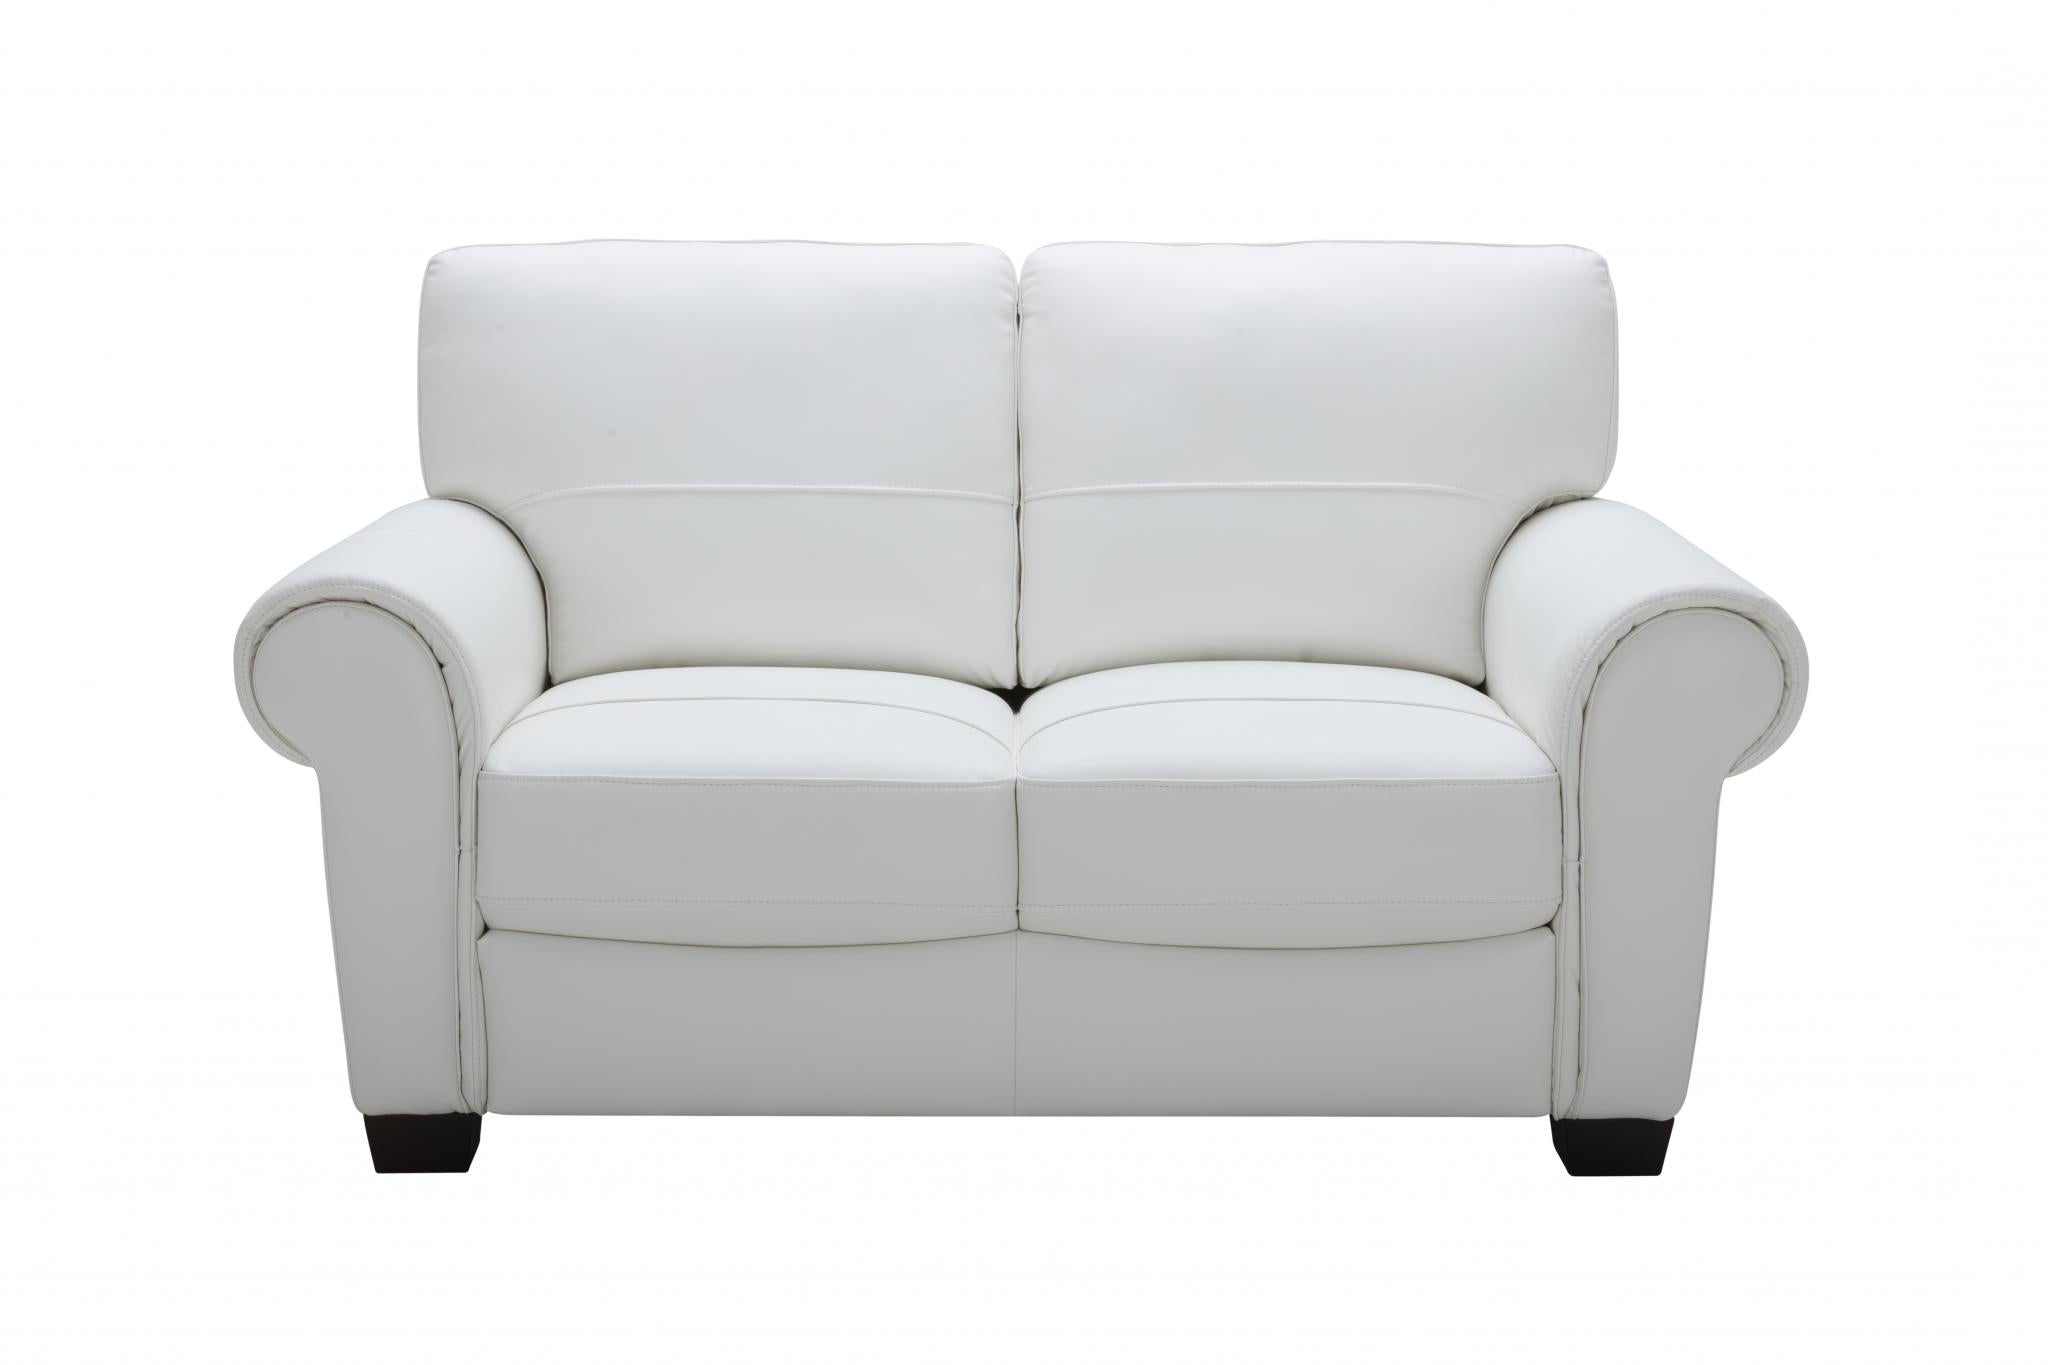 kicking up furnishings loveseats your pin perfect feet for loveseat under comfortable piece